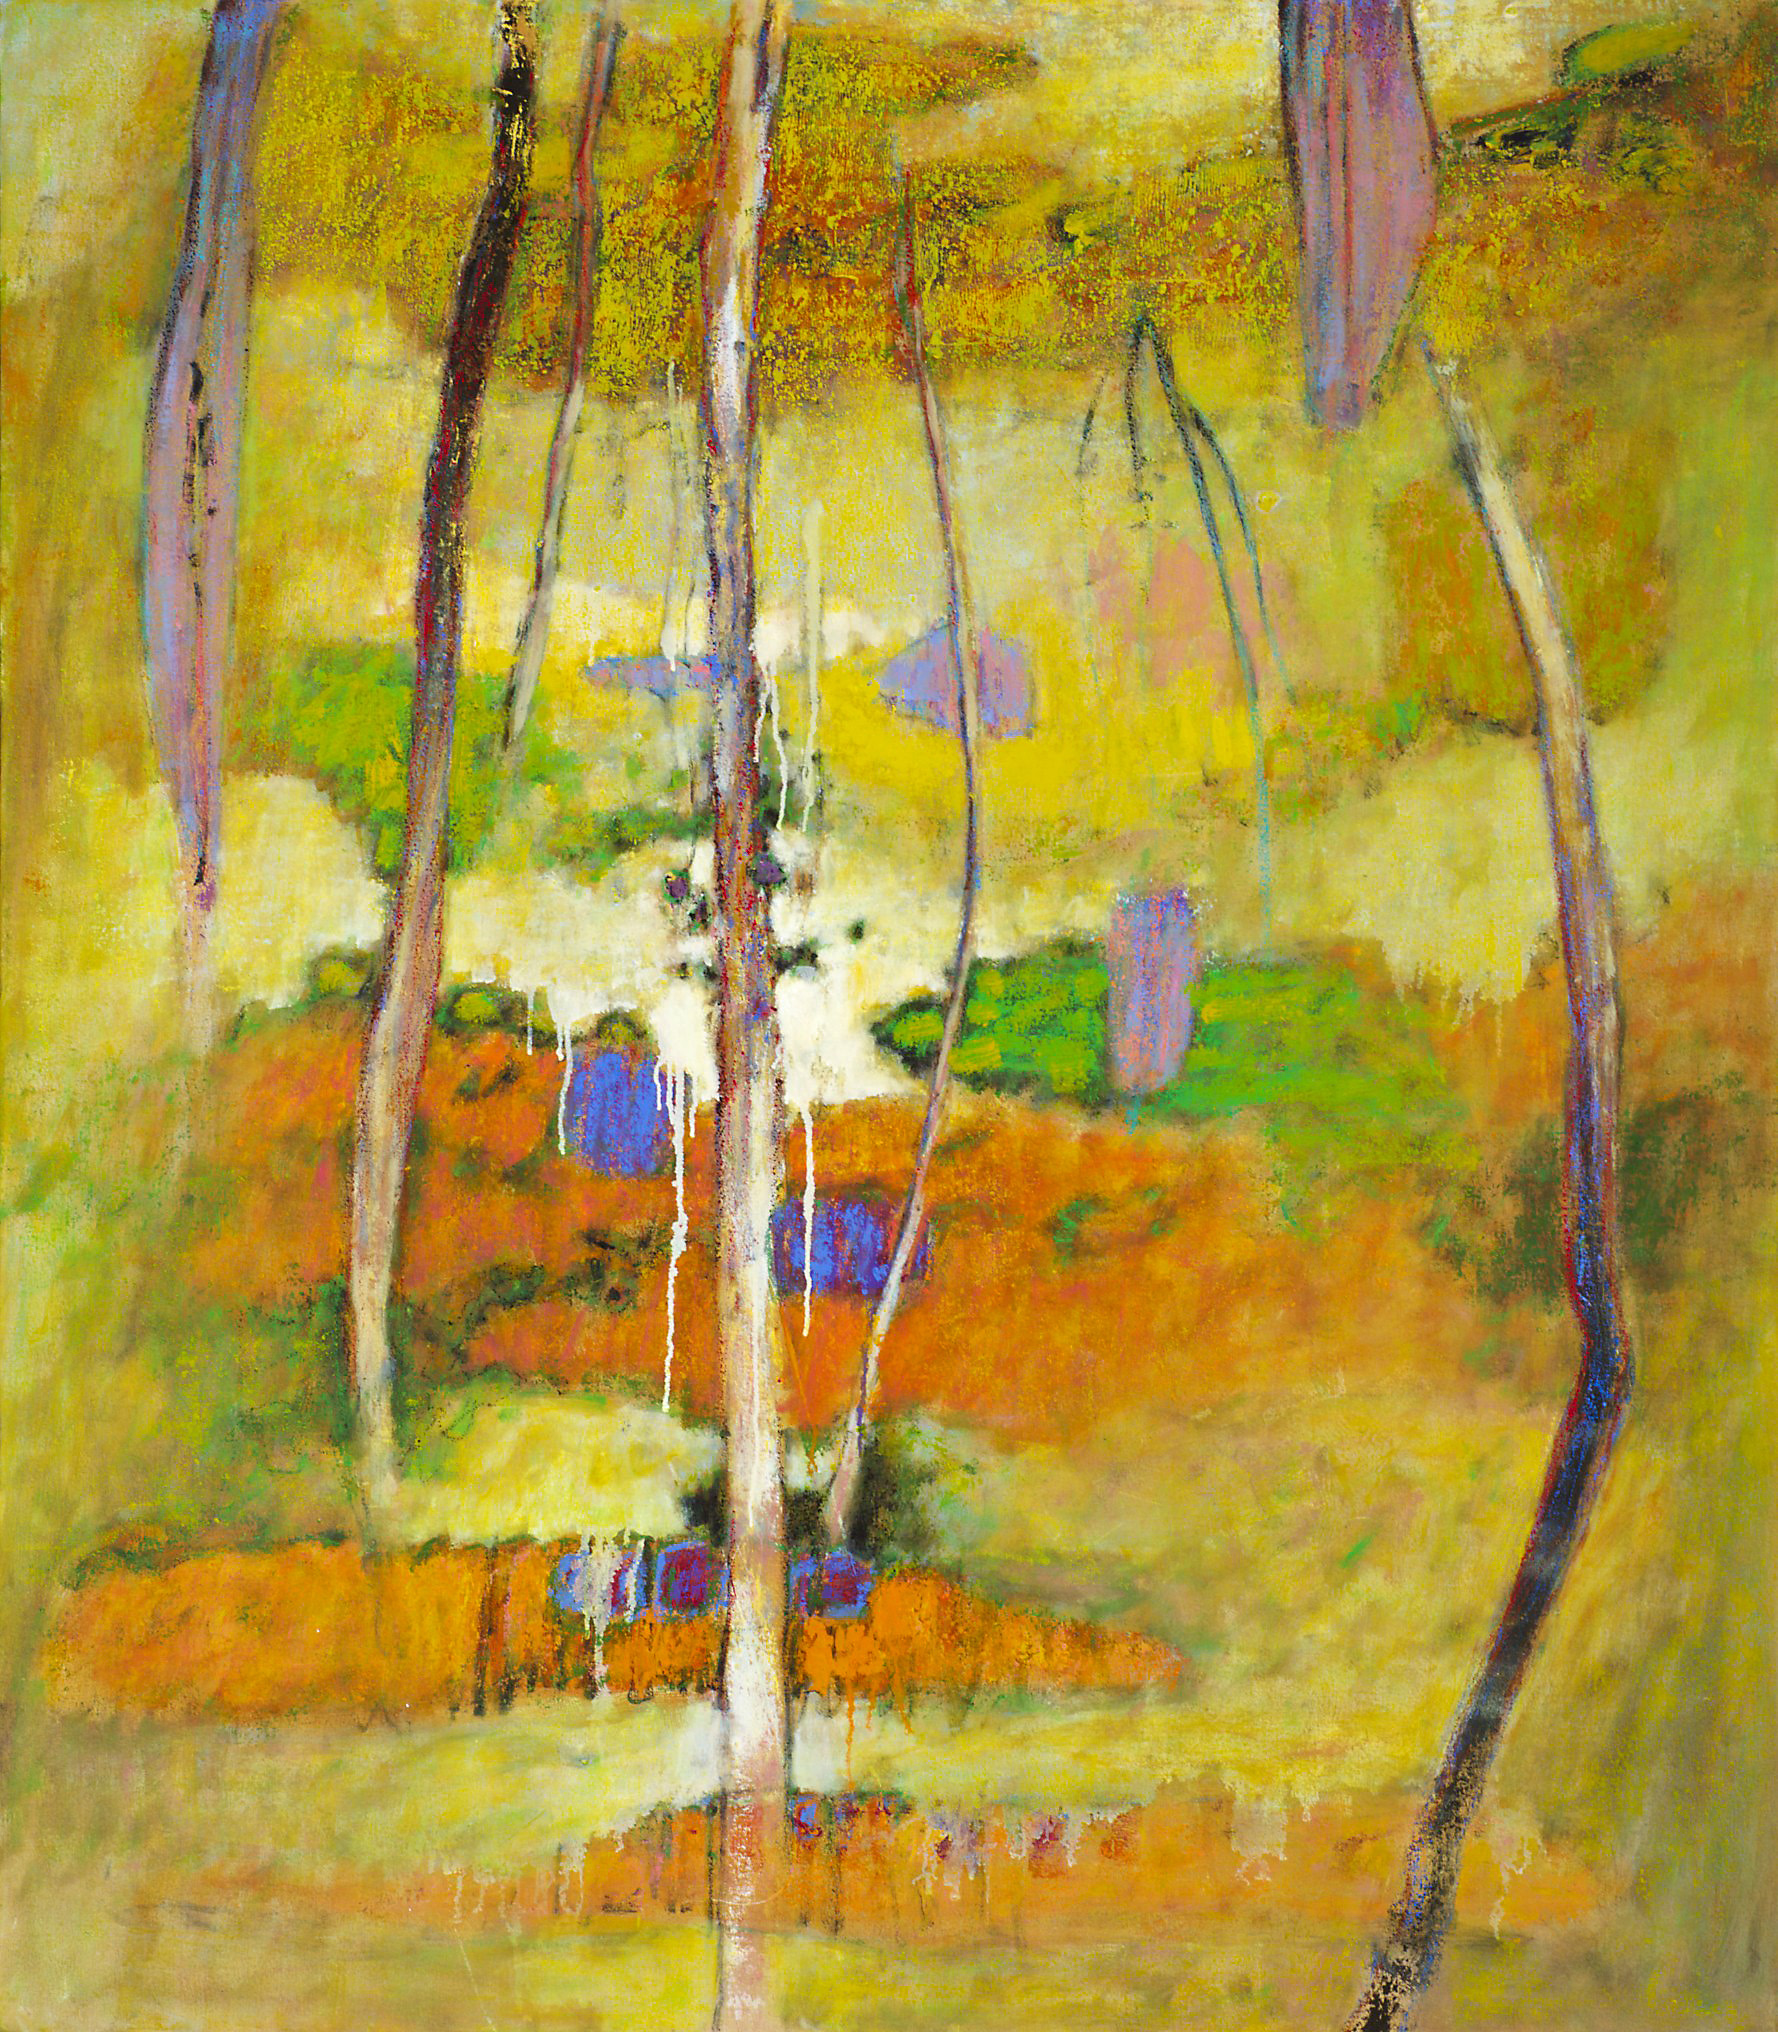 Paradise Lost   | oil on canvas | 55 x 48"